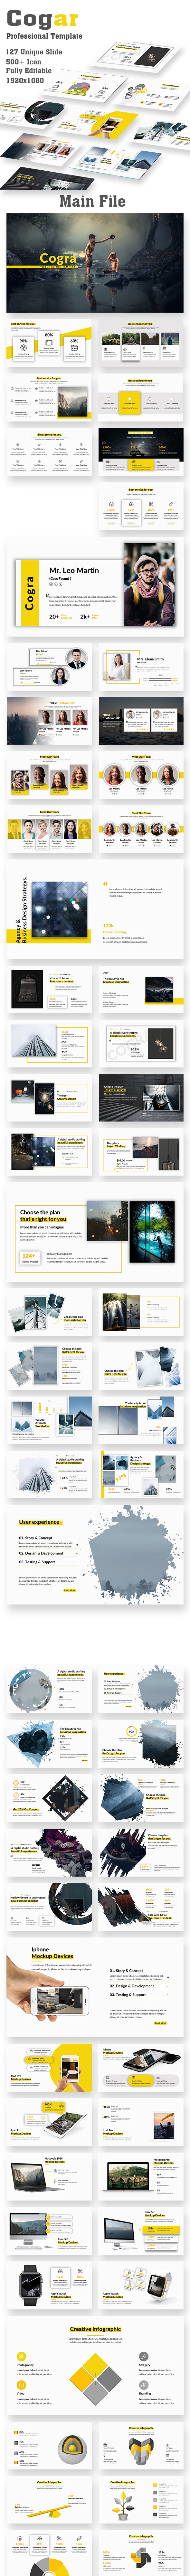 Cogra Professional PowerPoint Template - Creative PowerPoint Templates